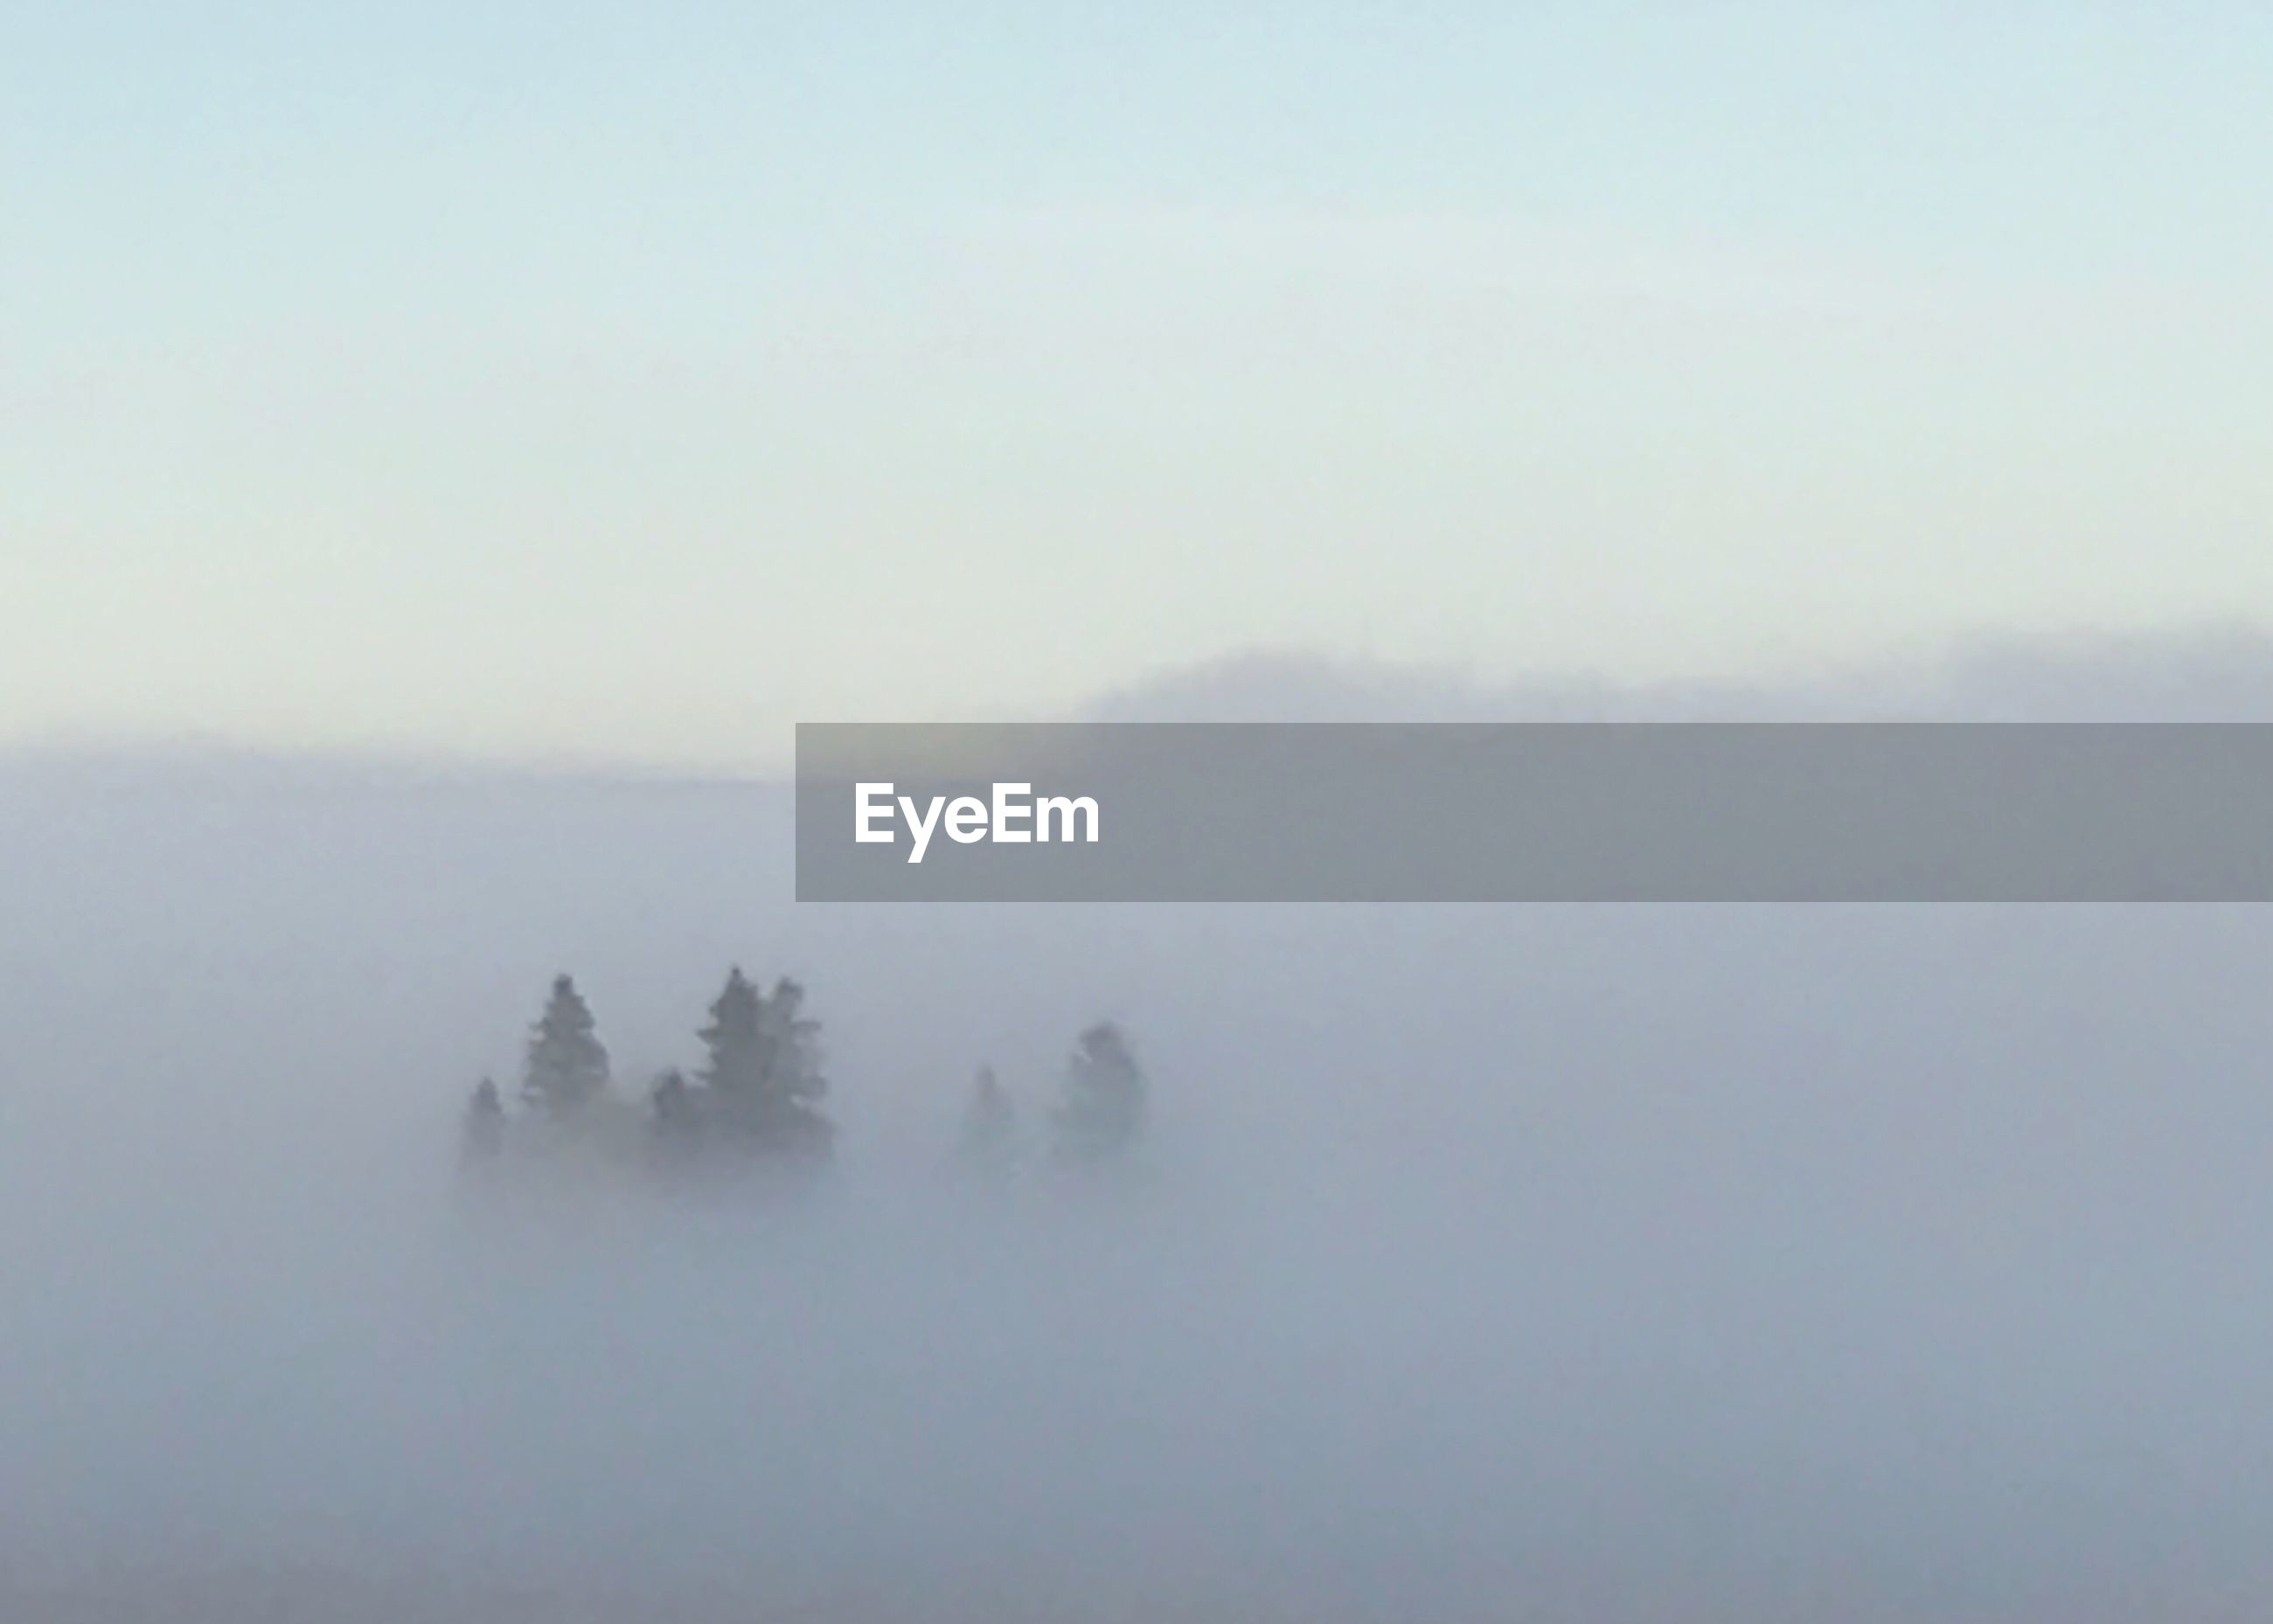 SCENIC VIEW OF LANDSCAPE IN FOGGY WEATHER AGAINST SKY DURING WINTER